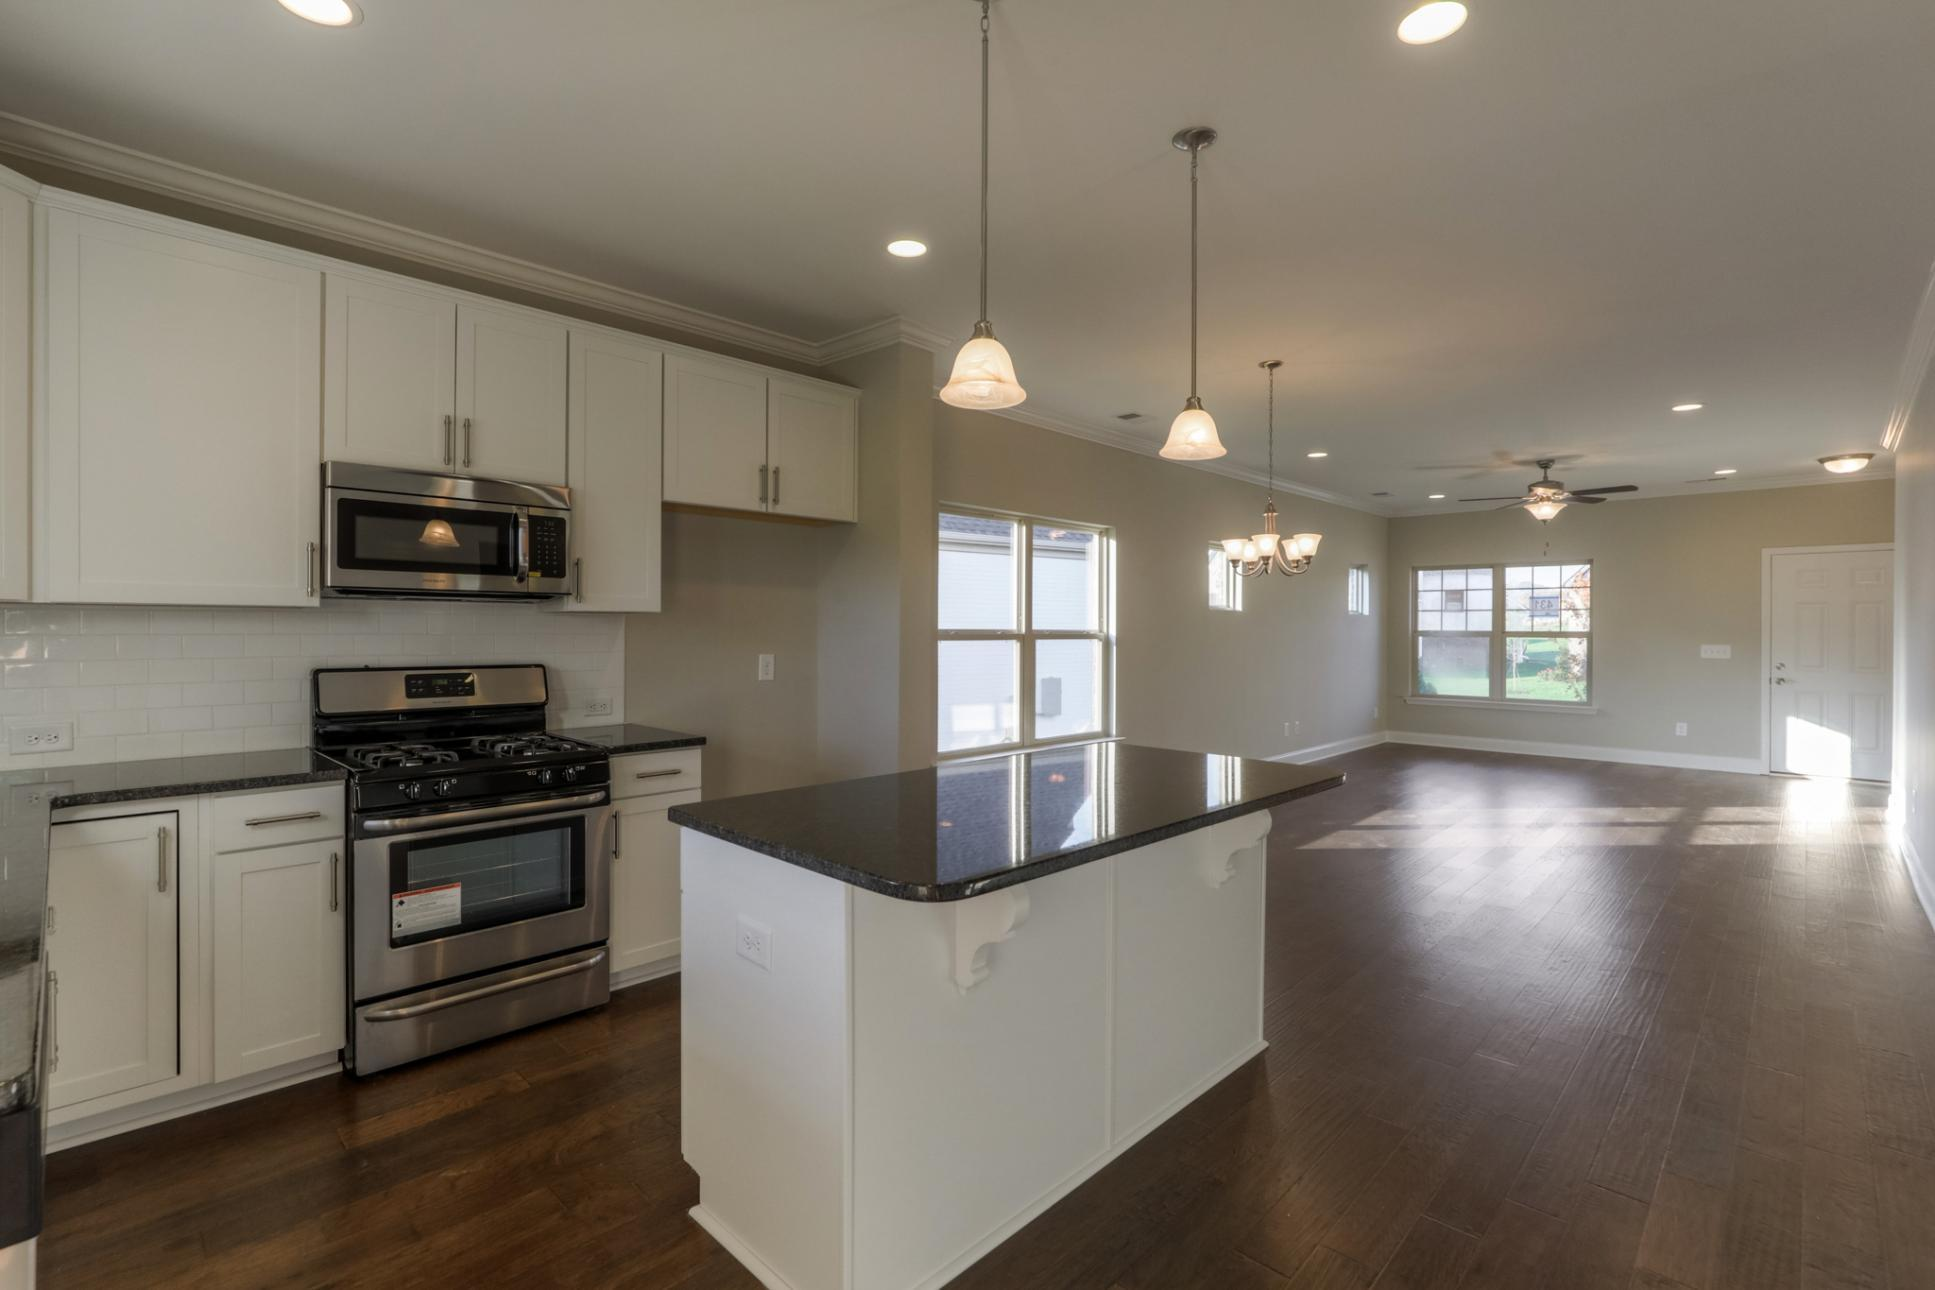 Kitchen featured in The Springmont By Goodall Homes in Knoxville, TN